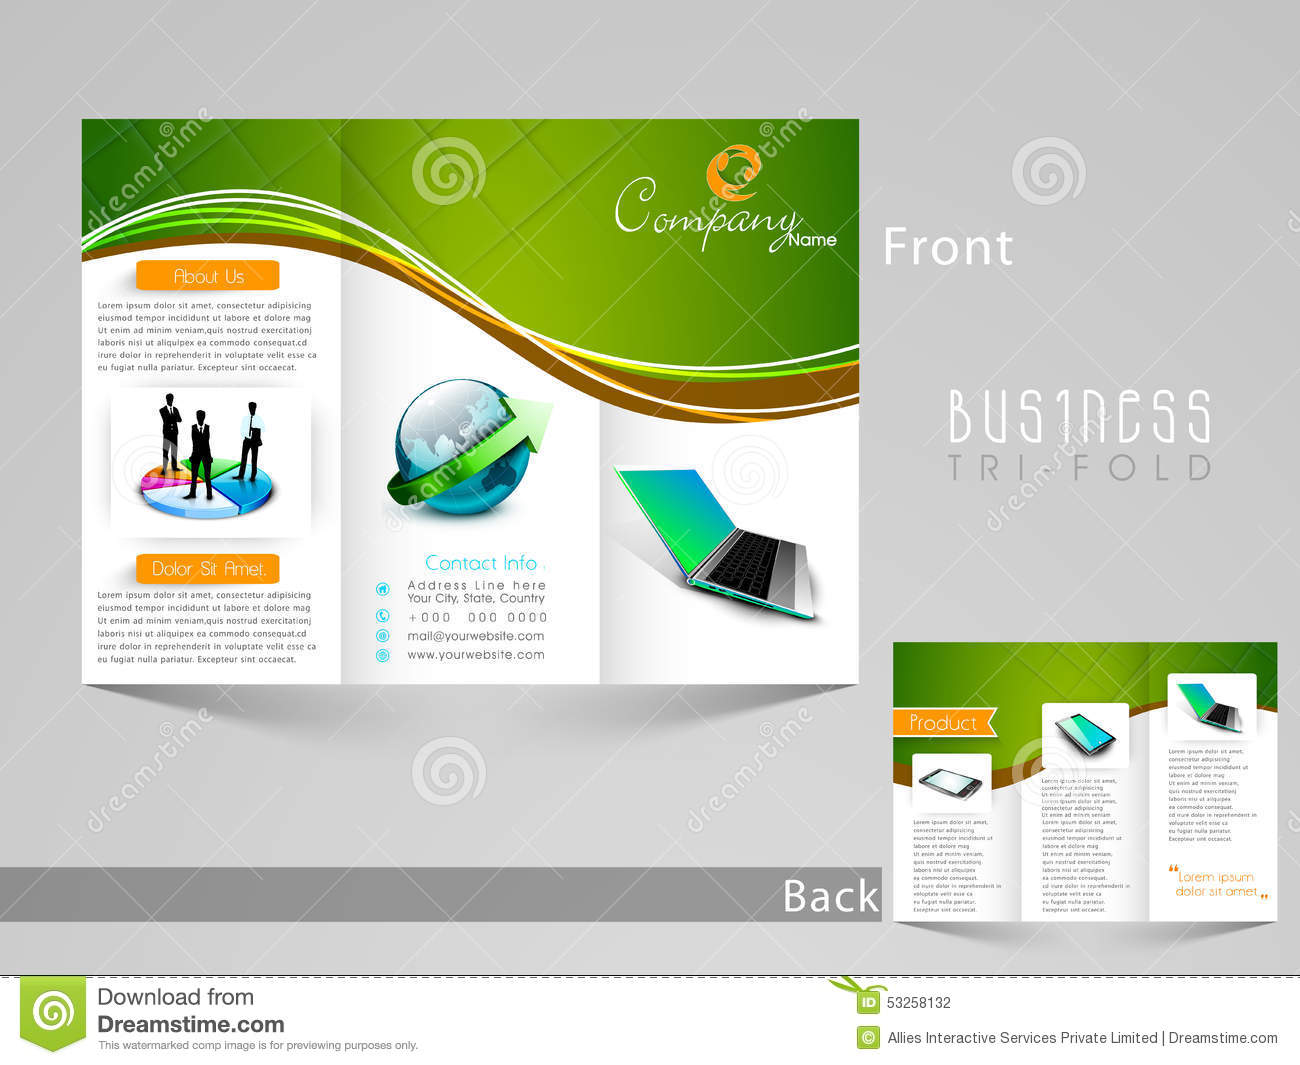 Stylish tri fold template brochure or flyer design stock for Tri fold business brochure template